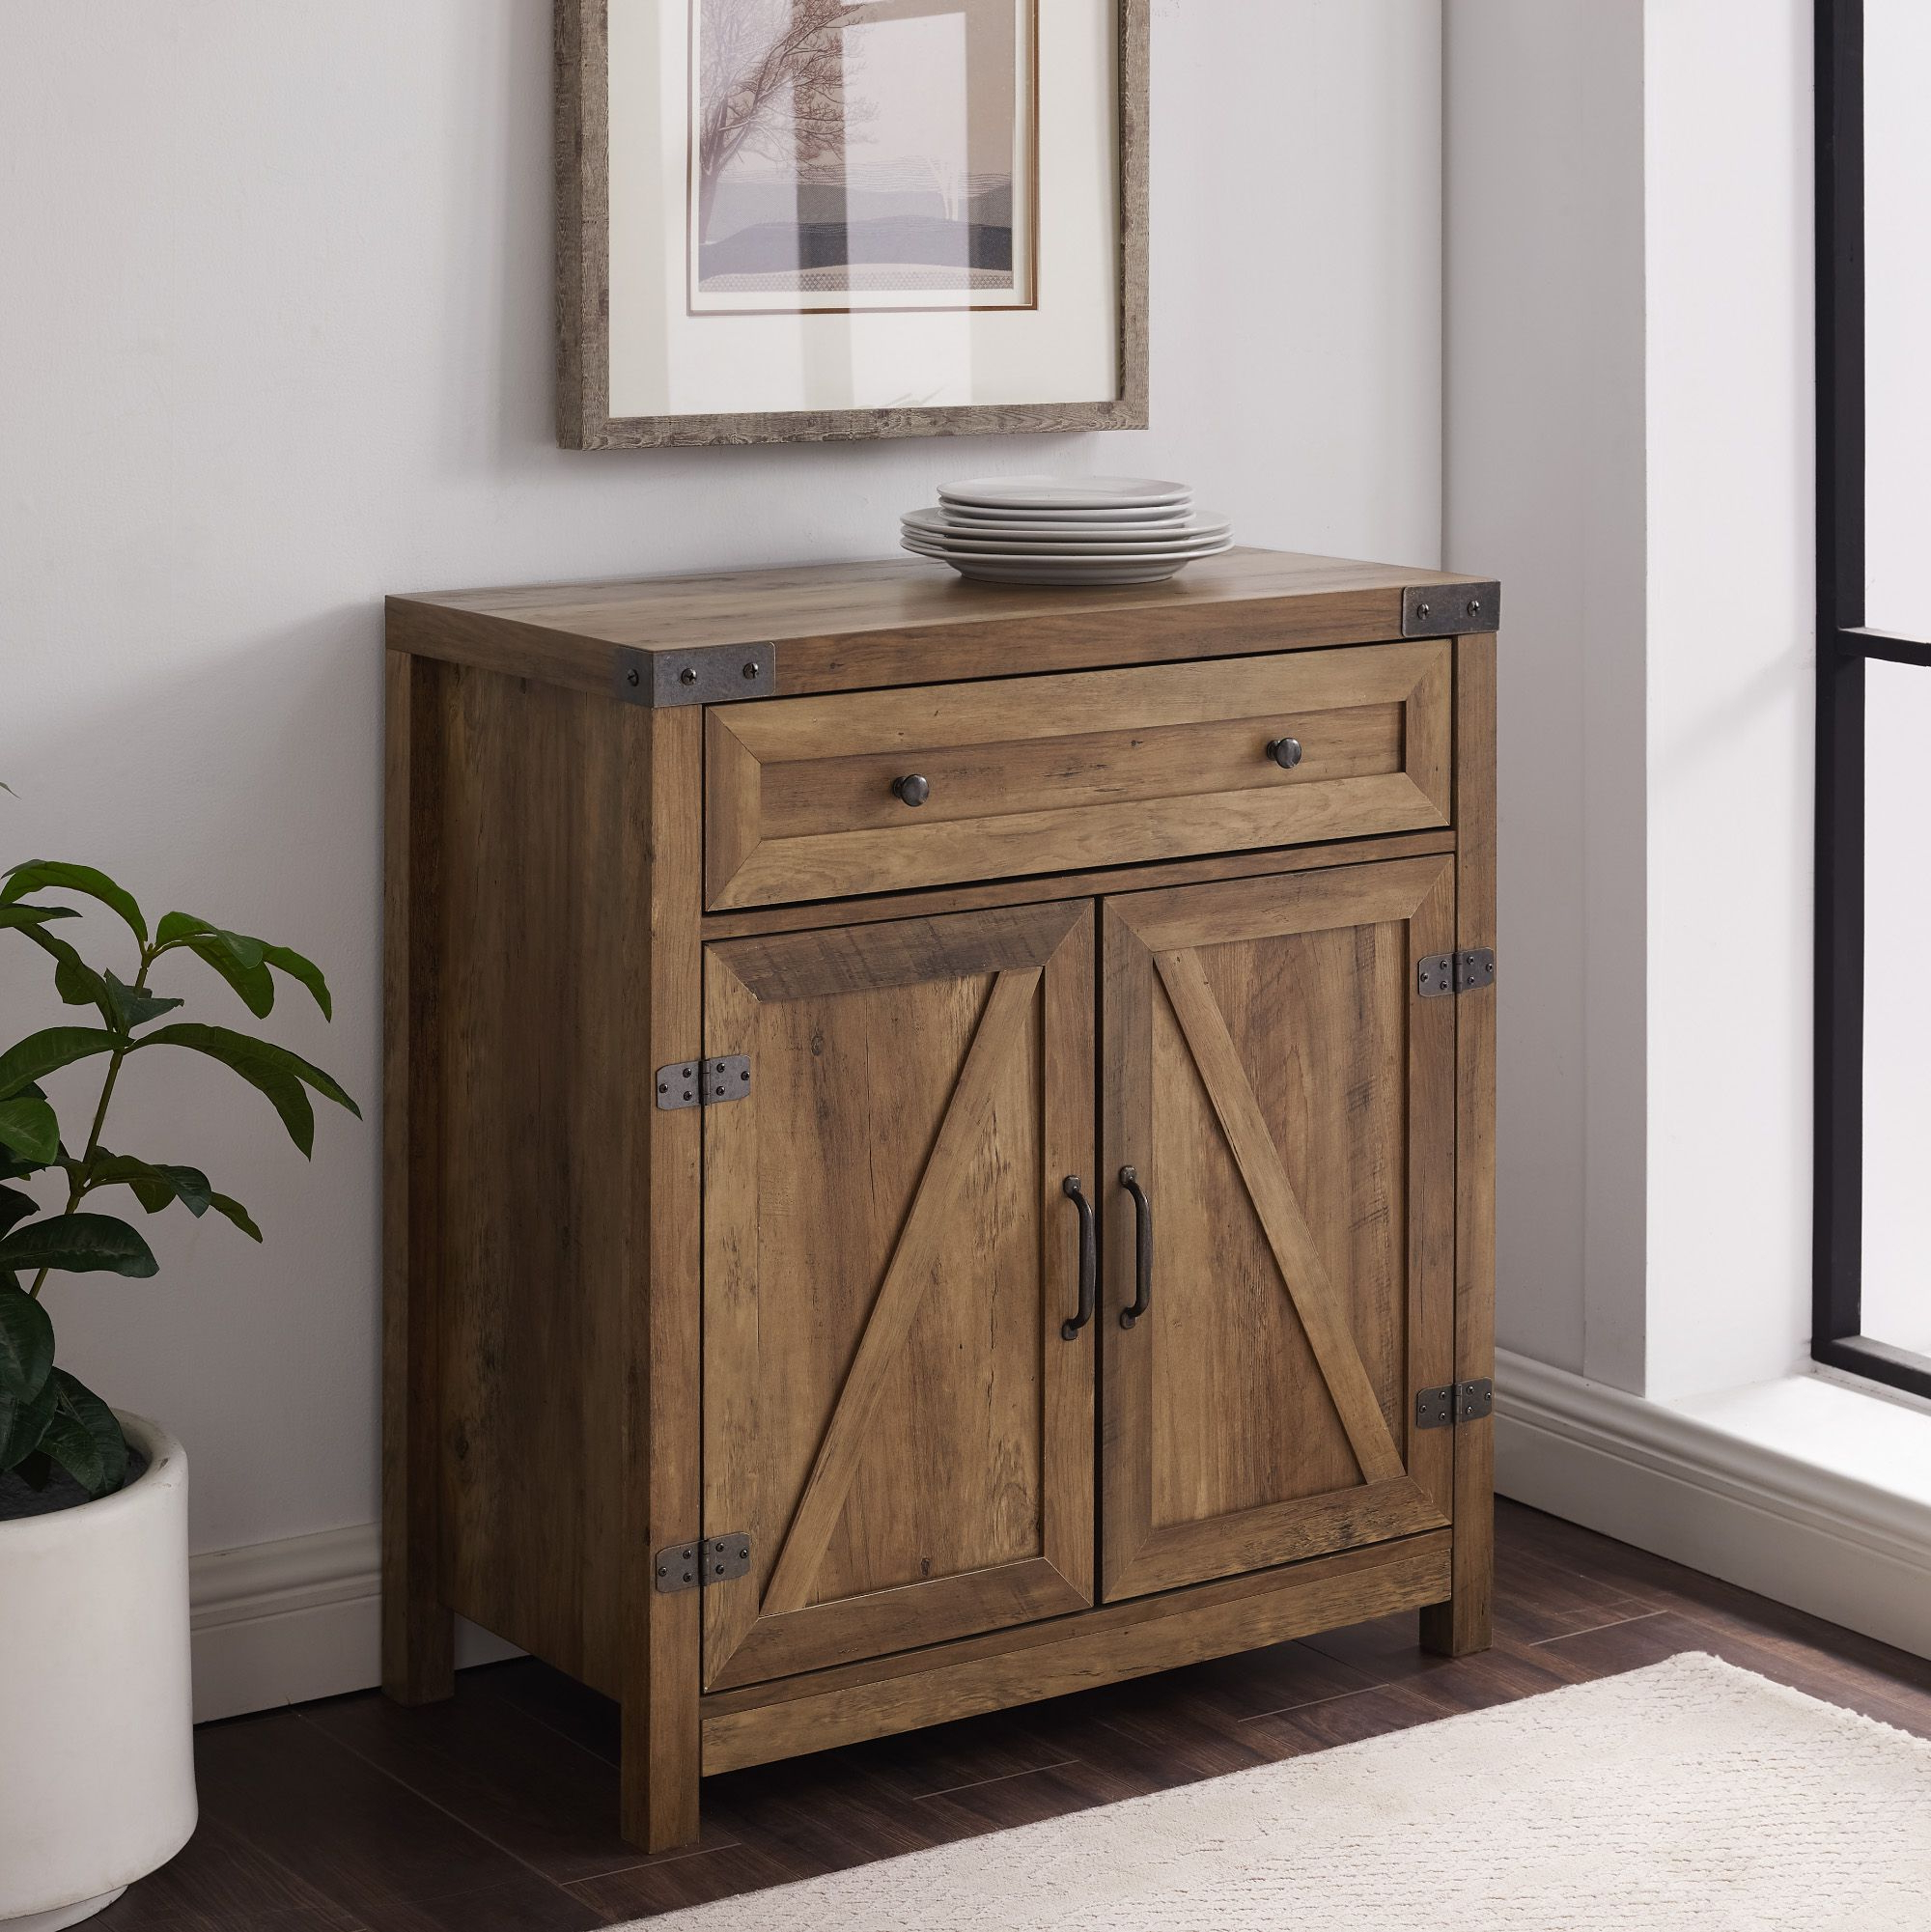 Well Known Manor Park Farmhouse Barn Door Accent Cabinet Reclaimed For Woven Paths Farmhouse Sliding Barn Door Tv Stands With Multiple Finishes (View 7 of 10)